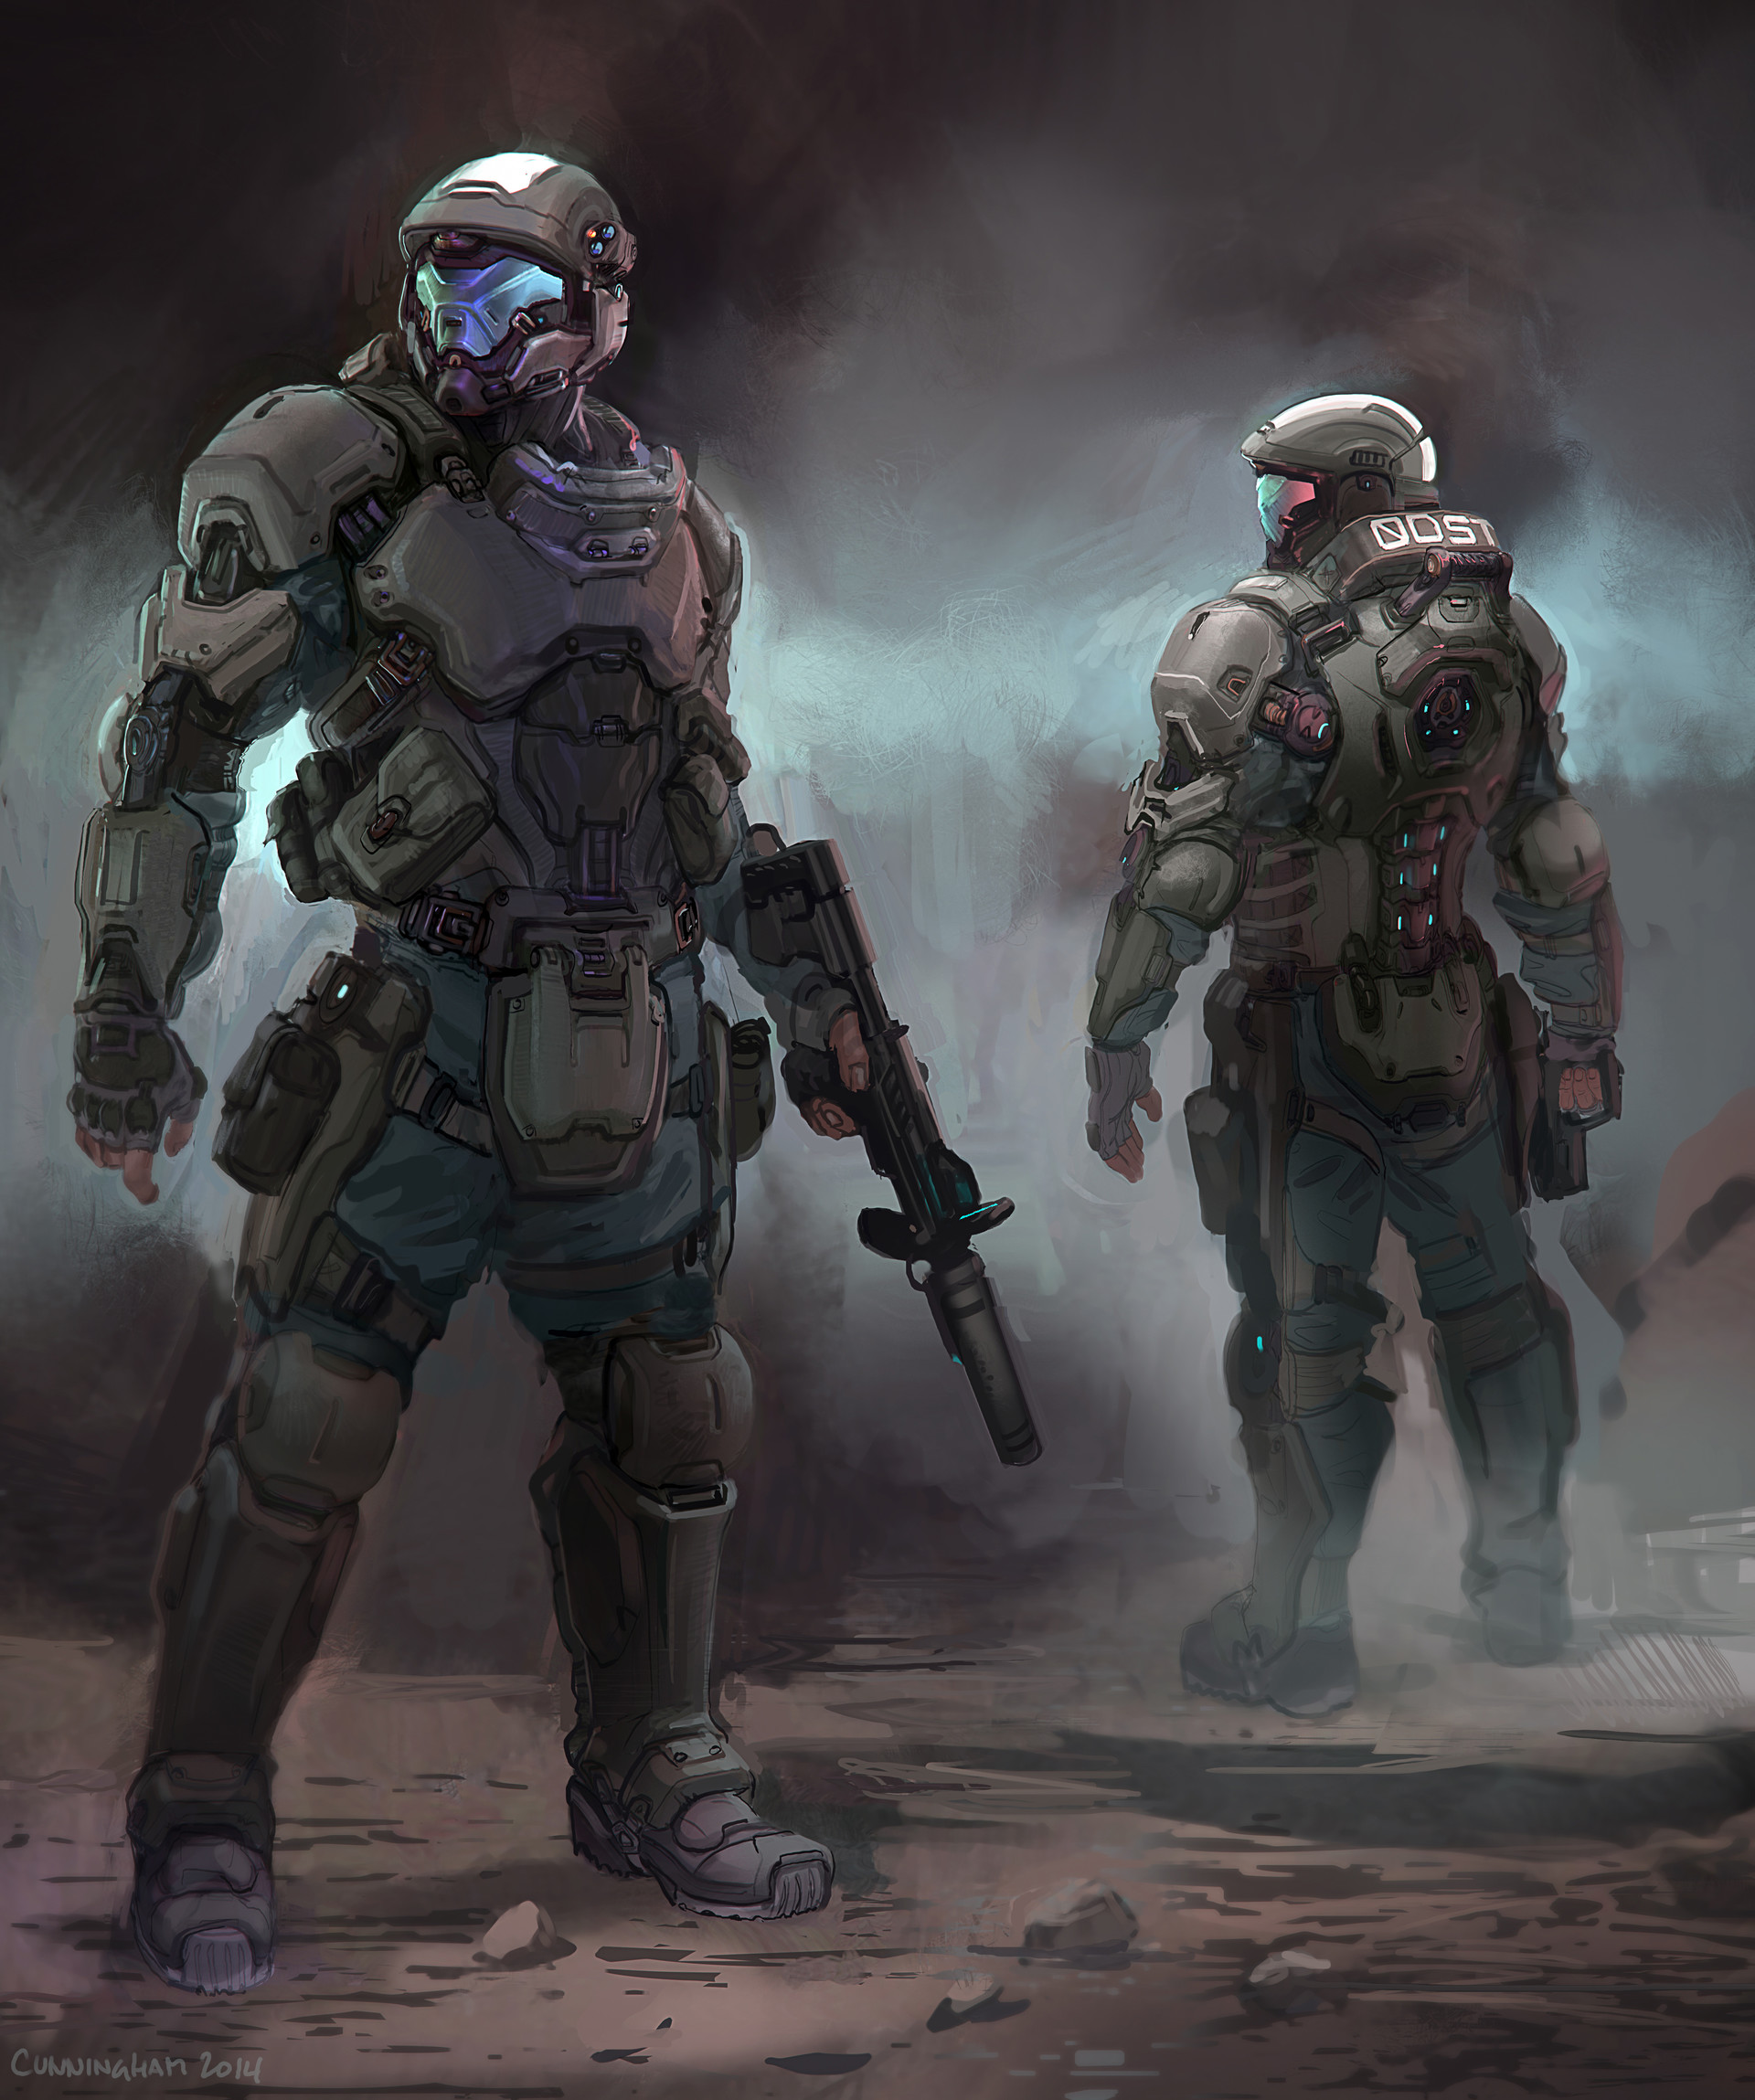 Unsc Capability Thread Wip Halo Page 84 Spacebattles